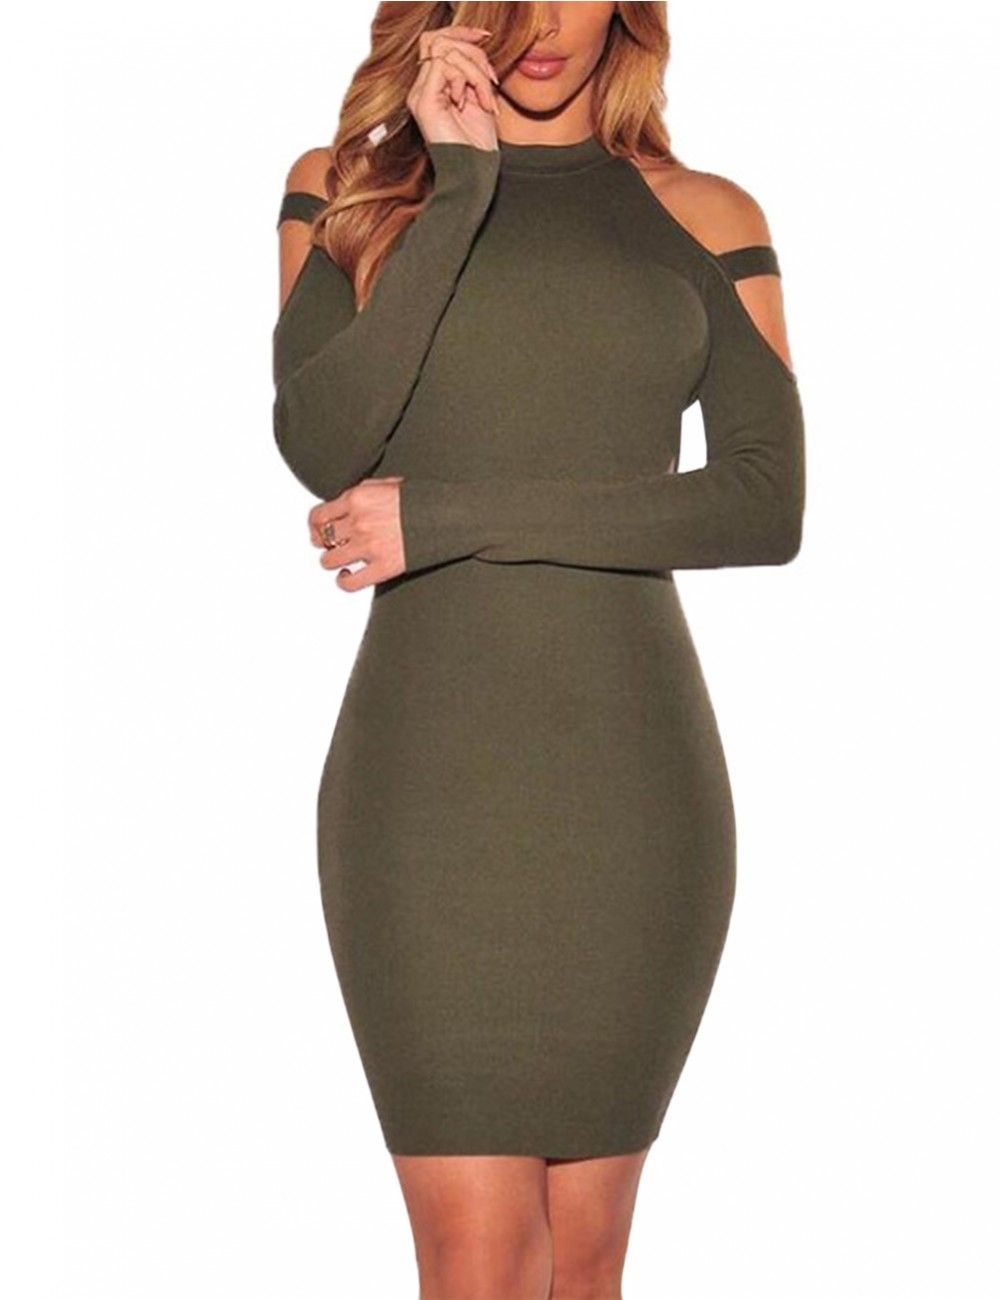 13ffb0e7dd Sexy Off Shoulder Dress Tight Dress Long Sleeve Knee-length Dress for Women  - Yesfashion.com in Free Shipping